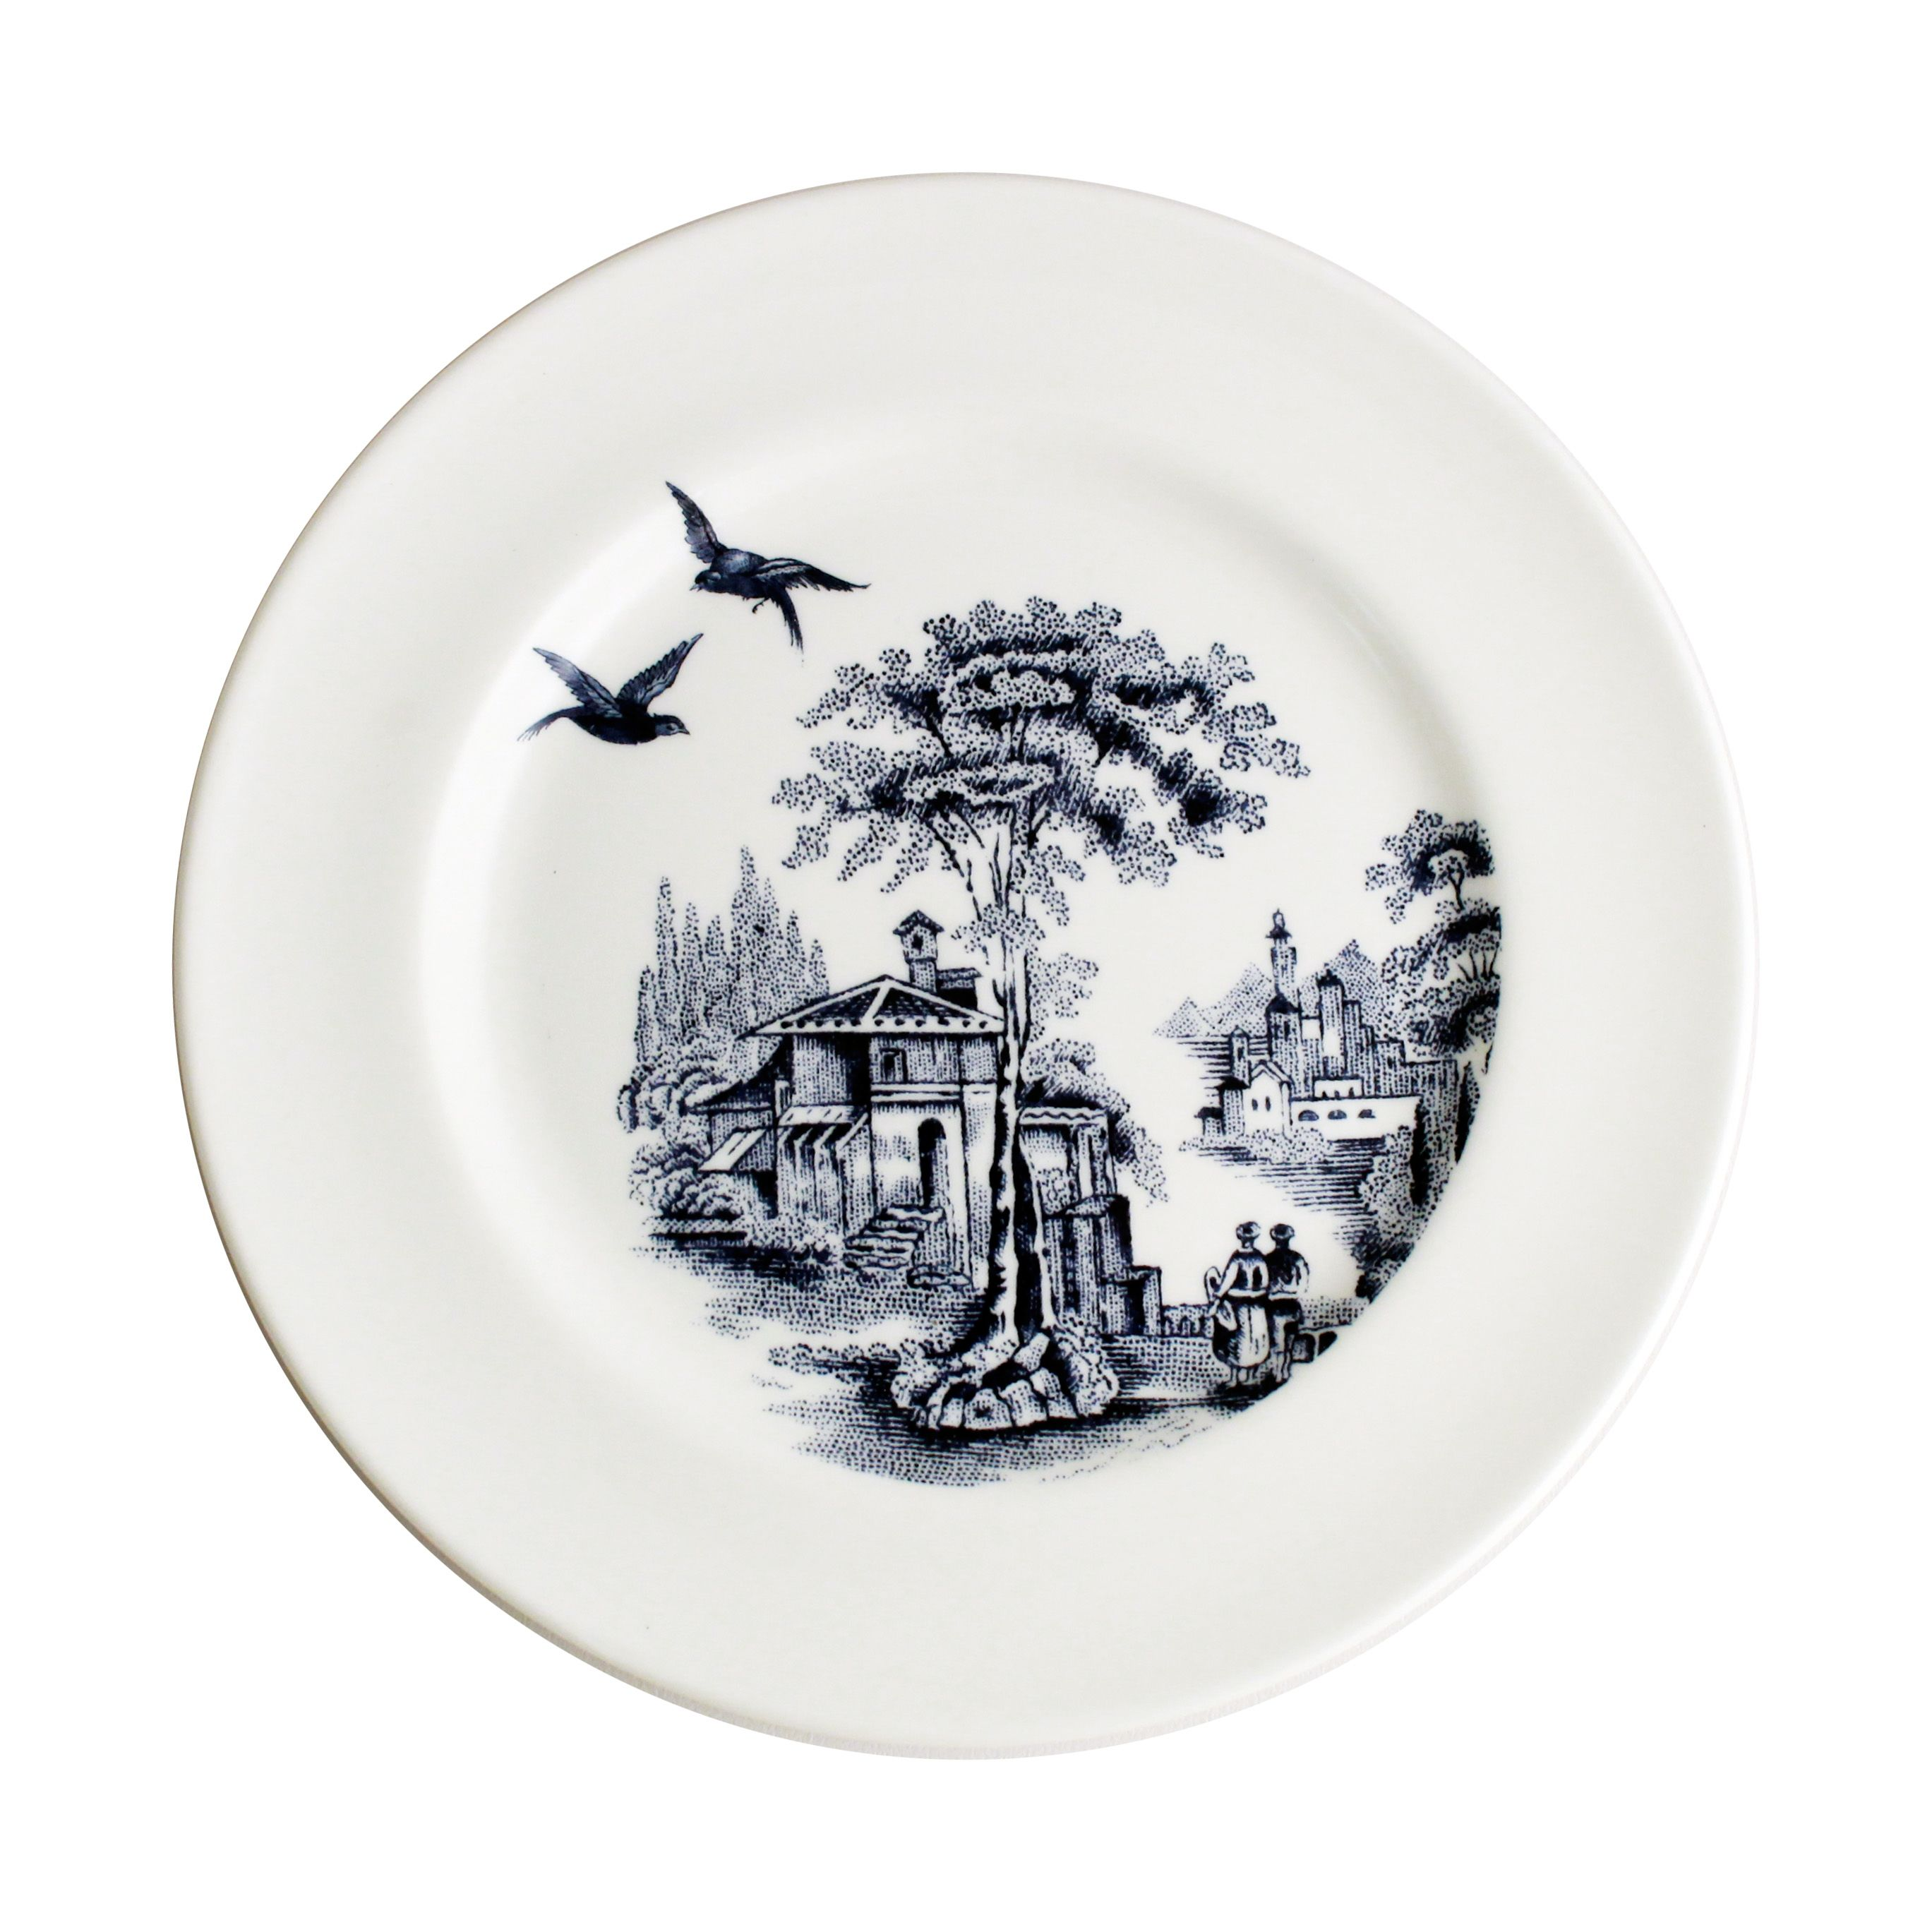 Archive Blue Flight 8 plate